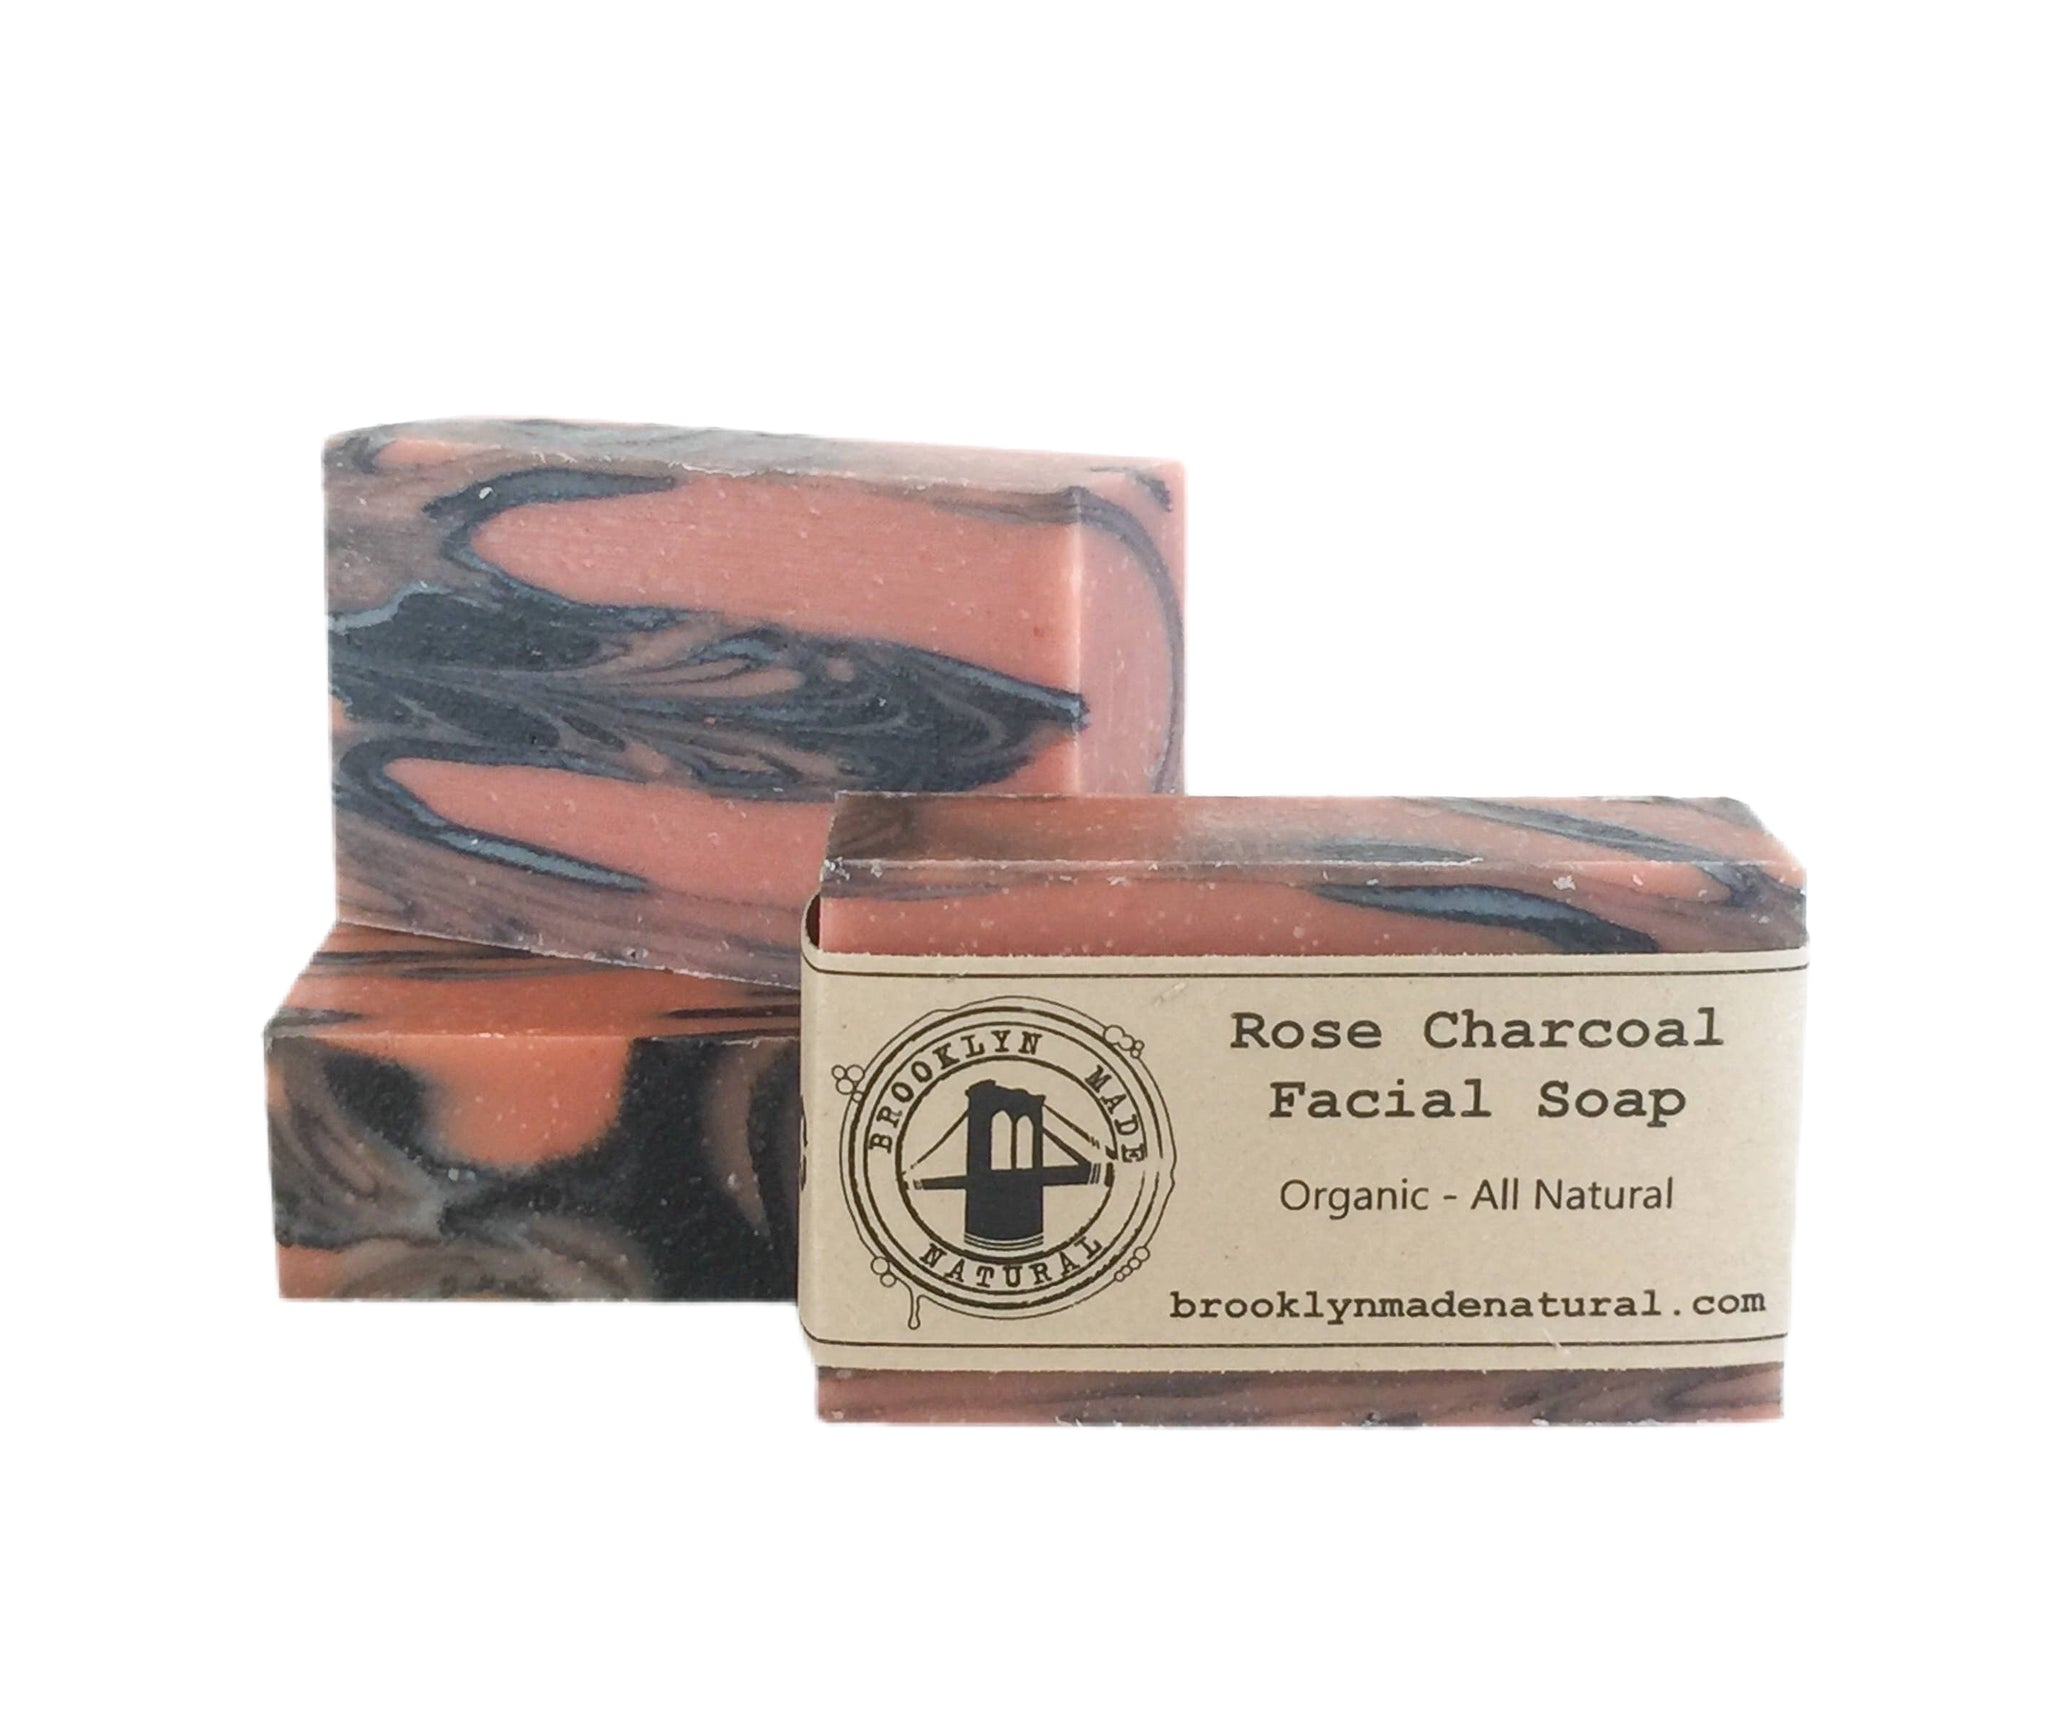 Rose Charcoal Facial Soap - Organic